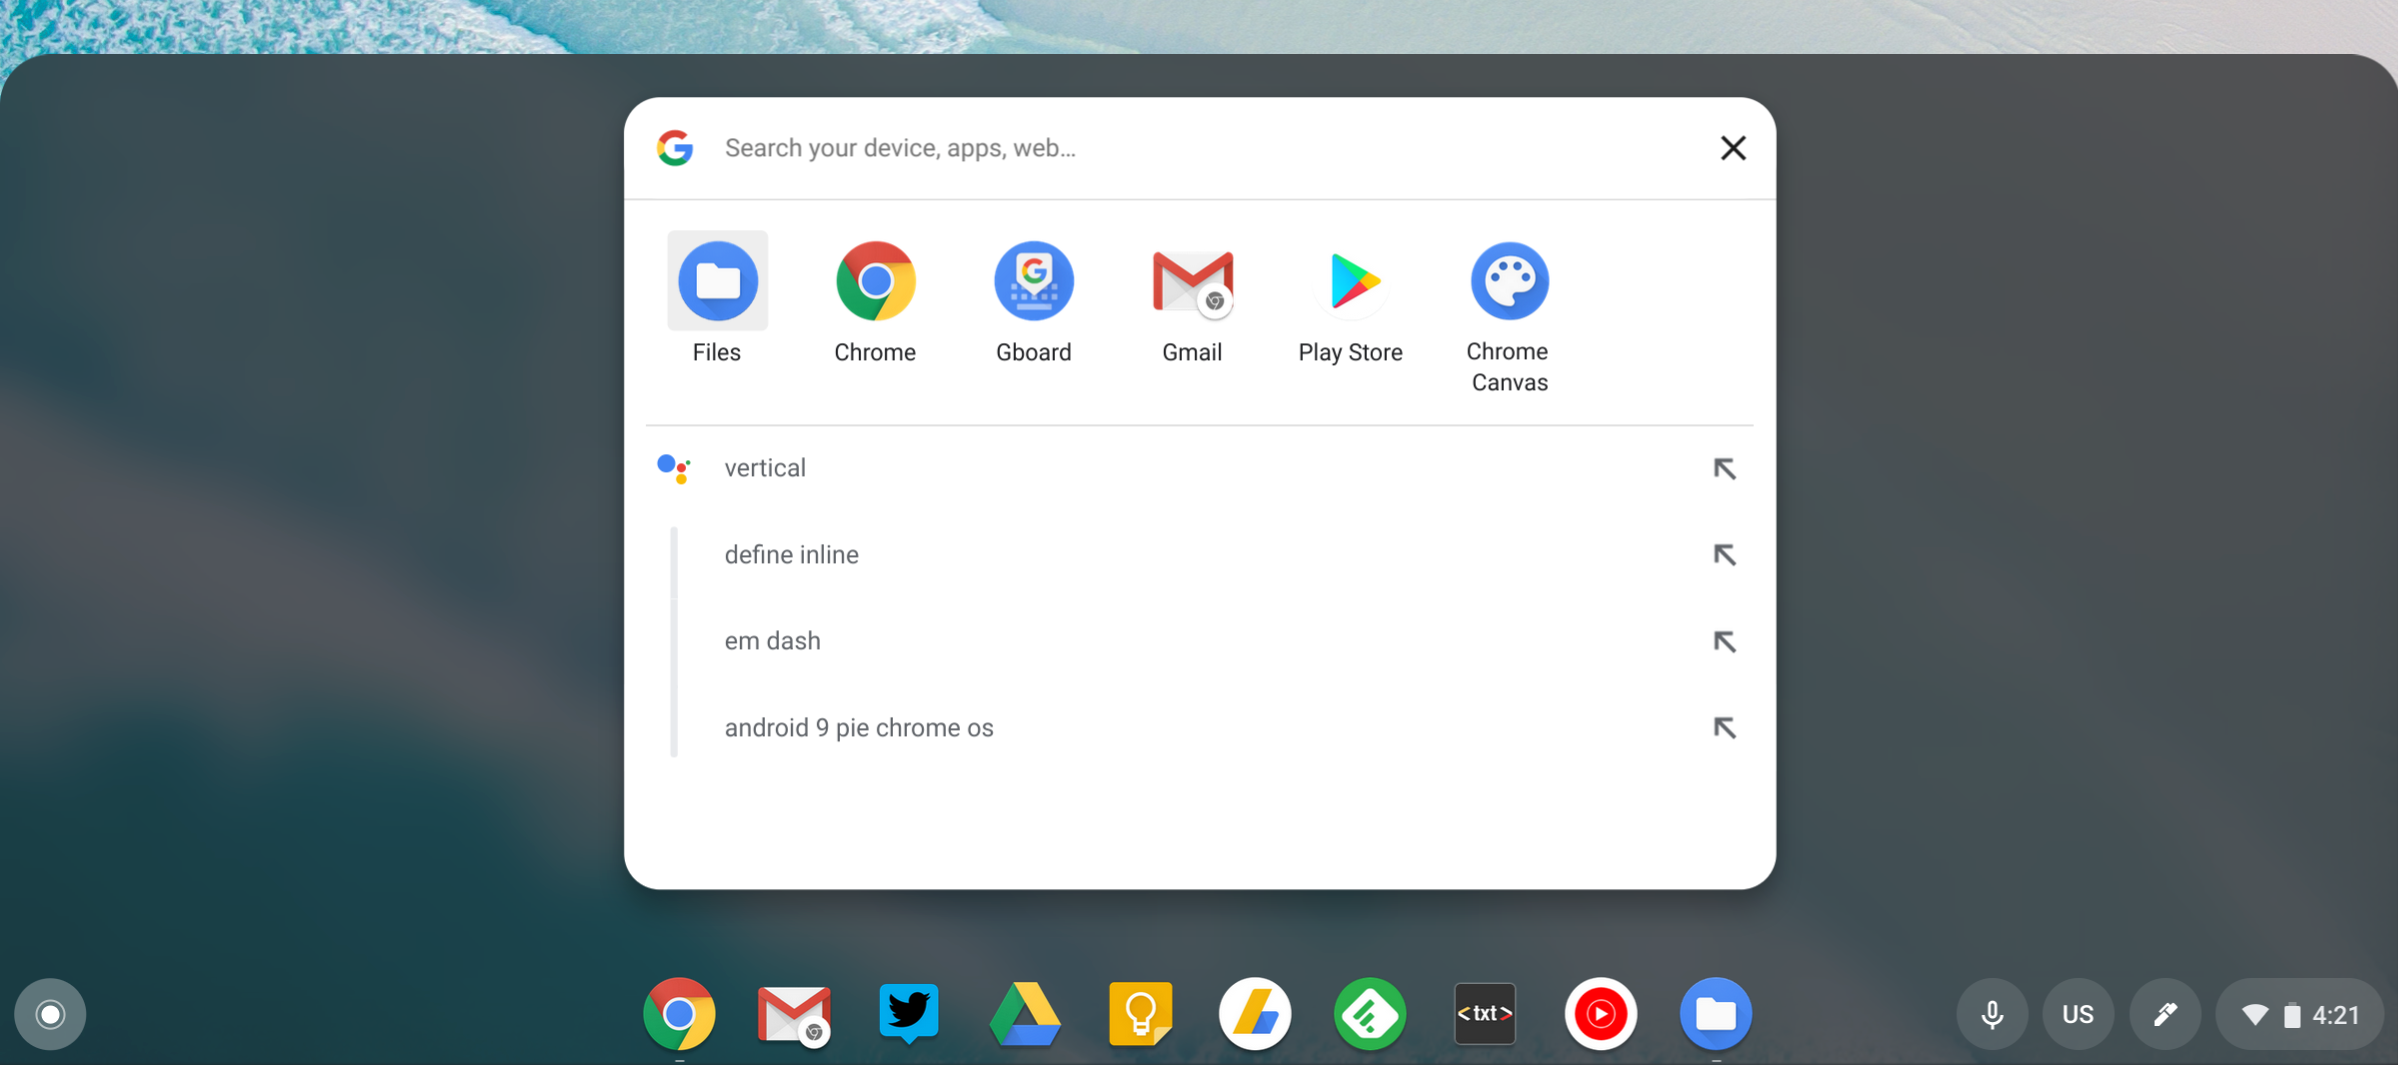 Chrome OS 74 rolling out w/ unified Assistant/device search - 9to5Google